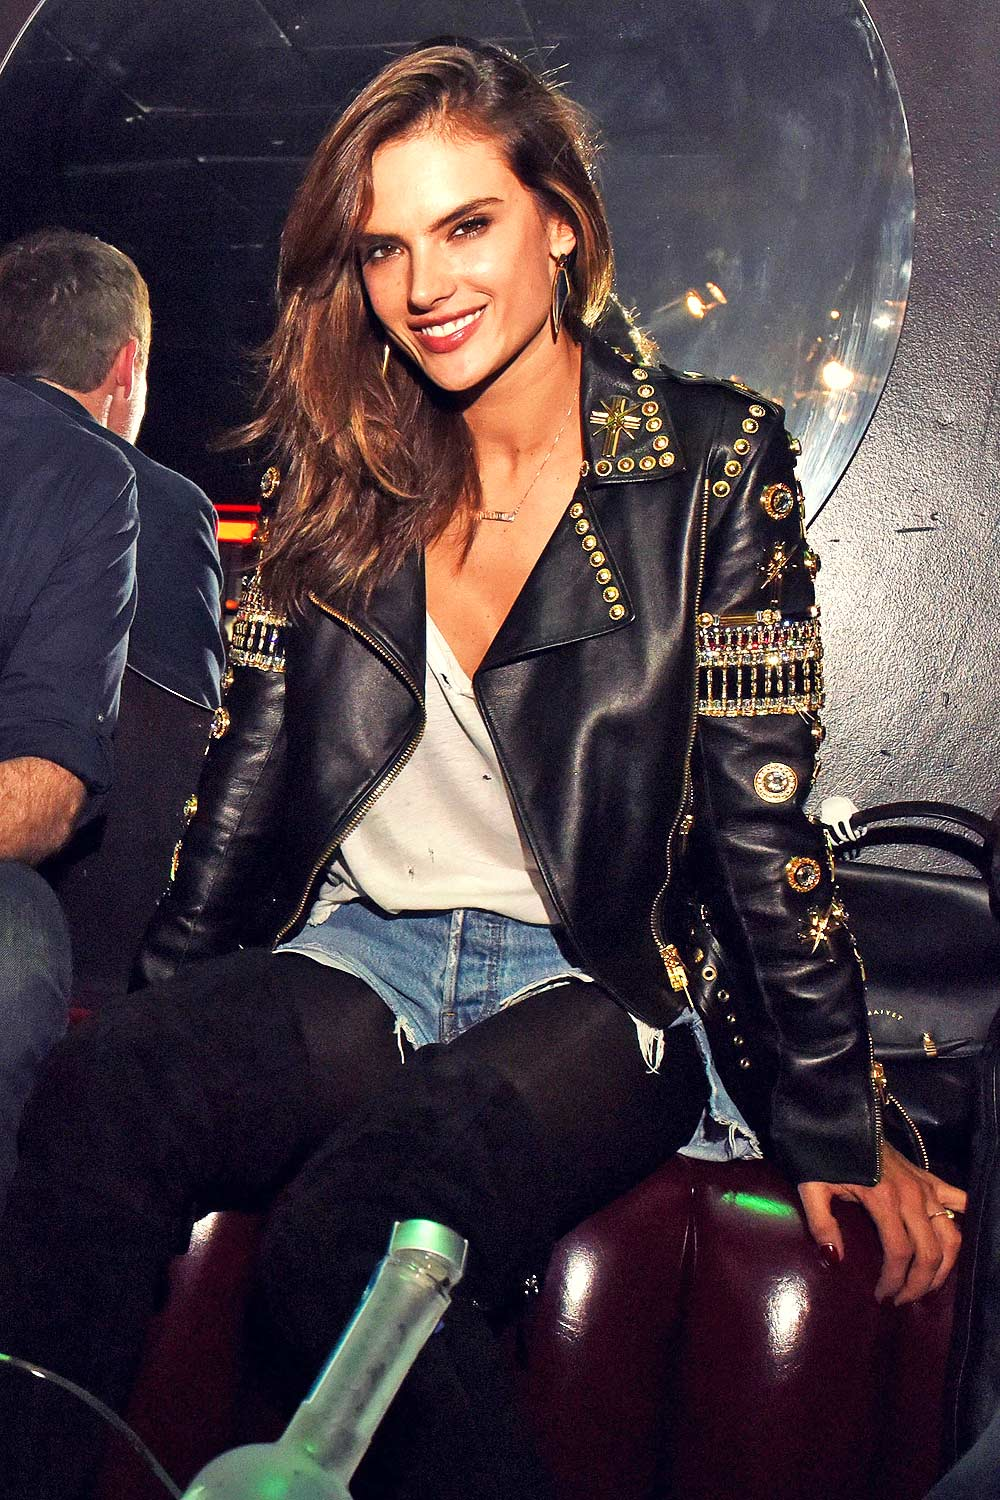 Alessandra Ambrosio attends The Official Viper Room Re-Launch Party